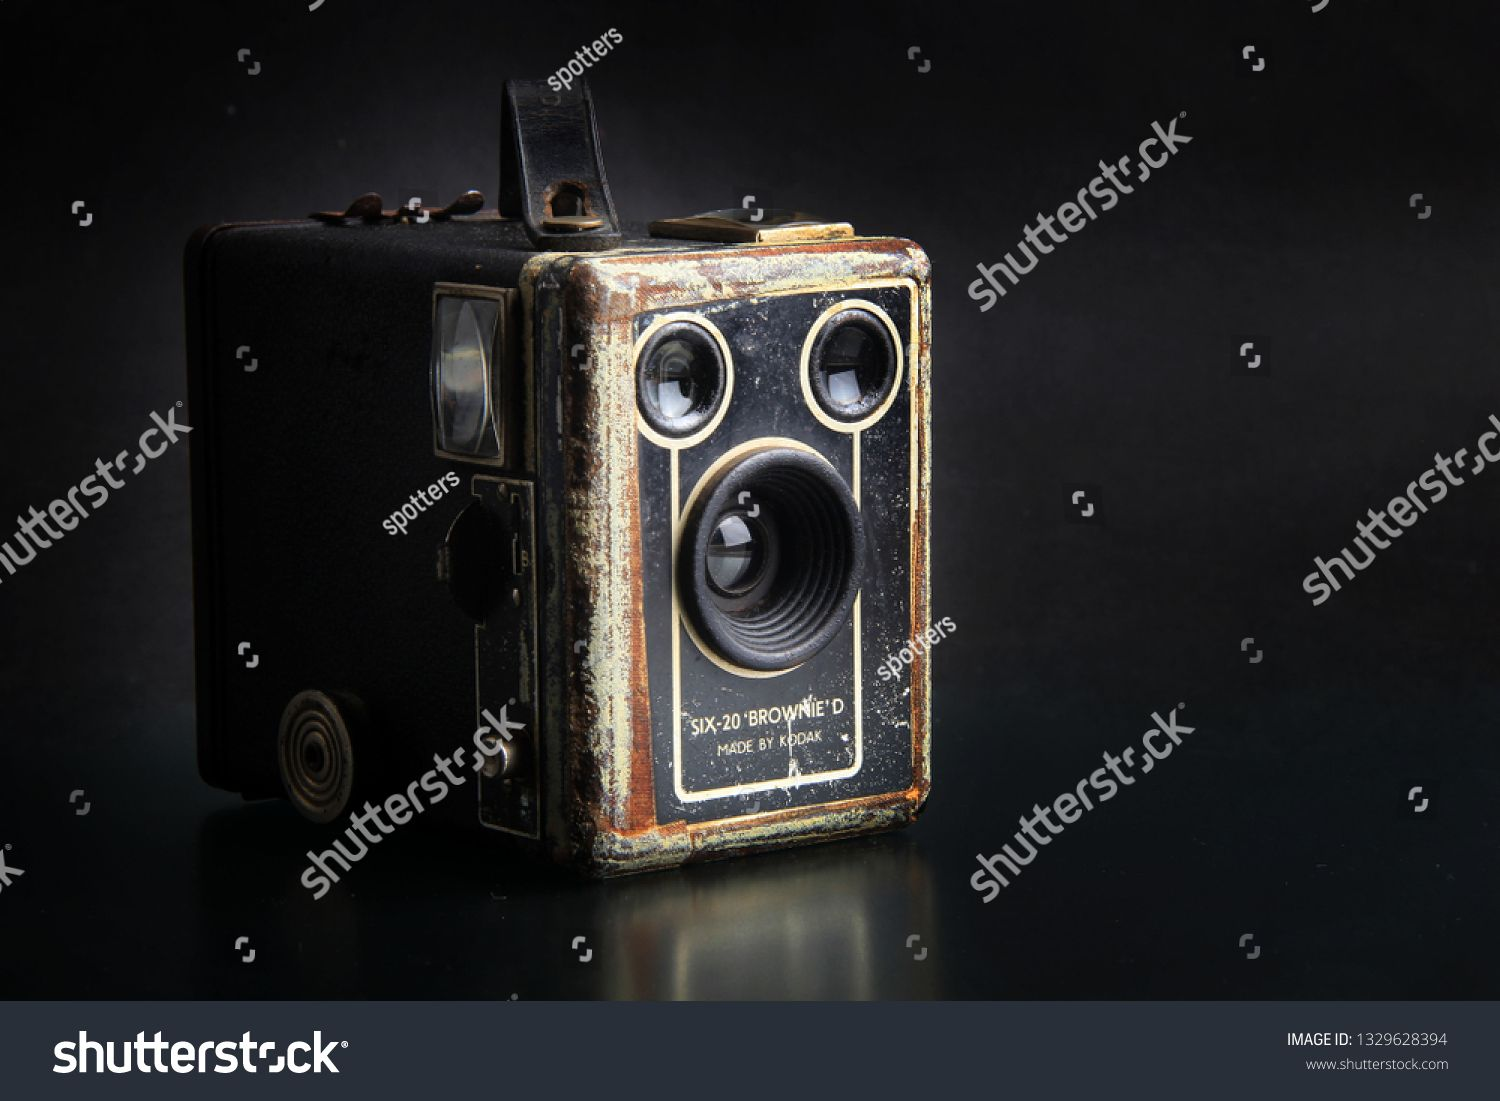 surabaya indonesia 4 maret 2019 kamera kuno kodak six 20 brownie d isolated black background sponsored spons photography for sale surabaya stock photos pinterest